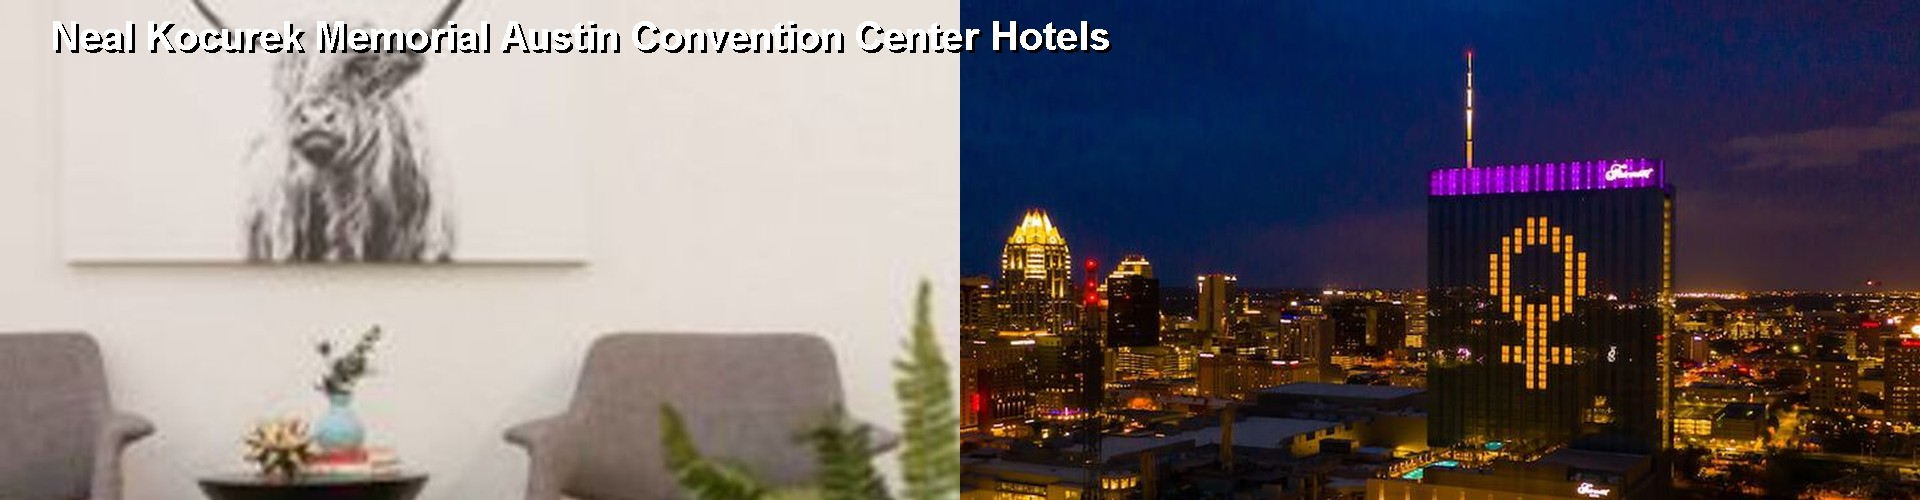 5 Best Hotels near Neal Kocurek Memorial Austin Convention Center